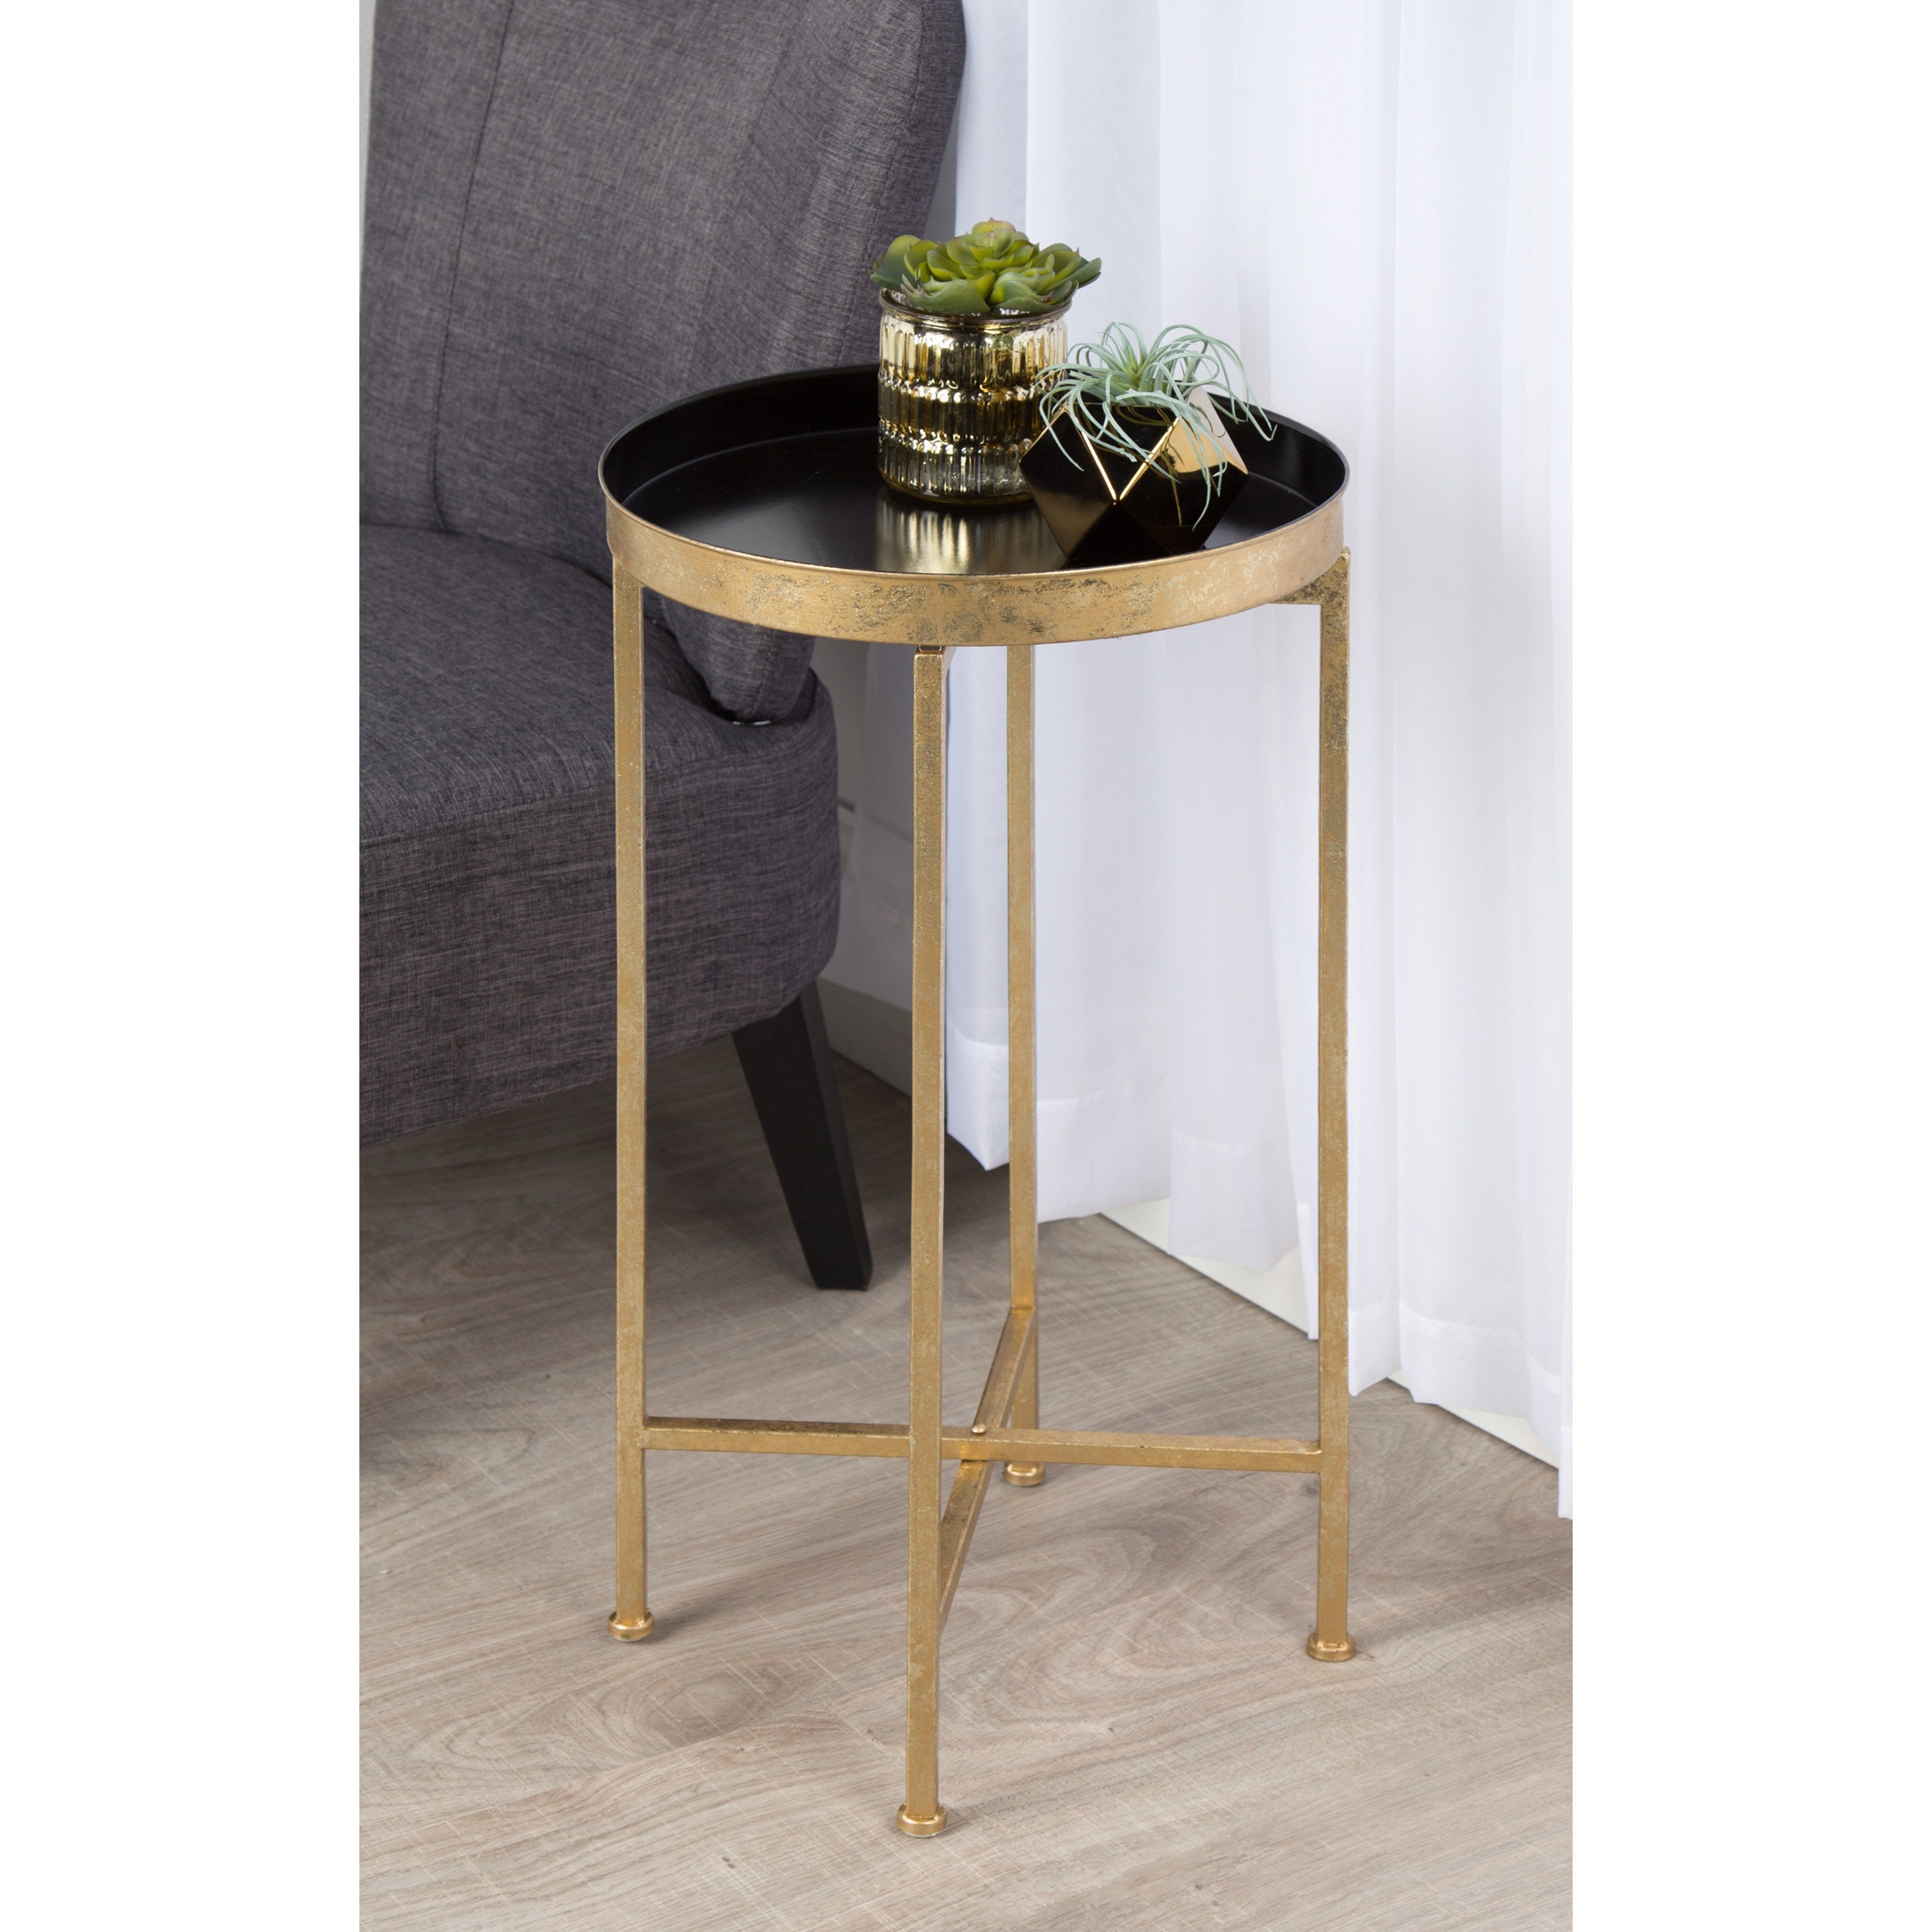 kate and laurel celia round metal foldable tray accent table teal goldtone finish gold ikea black cube storage red white oriental lamps marble high top oval glass coffee small